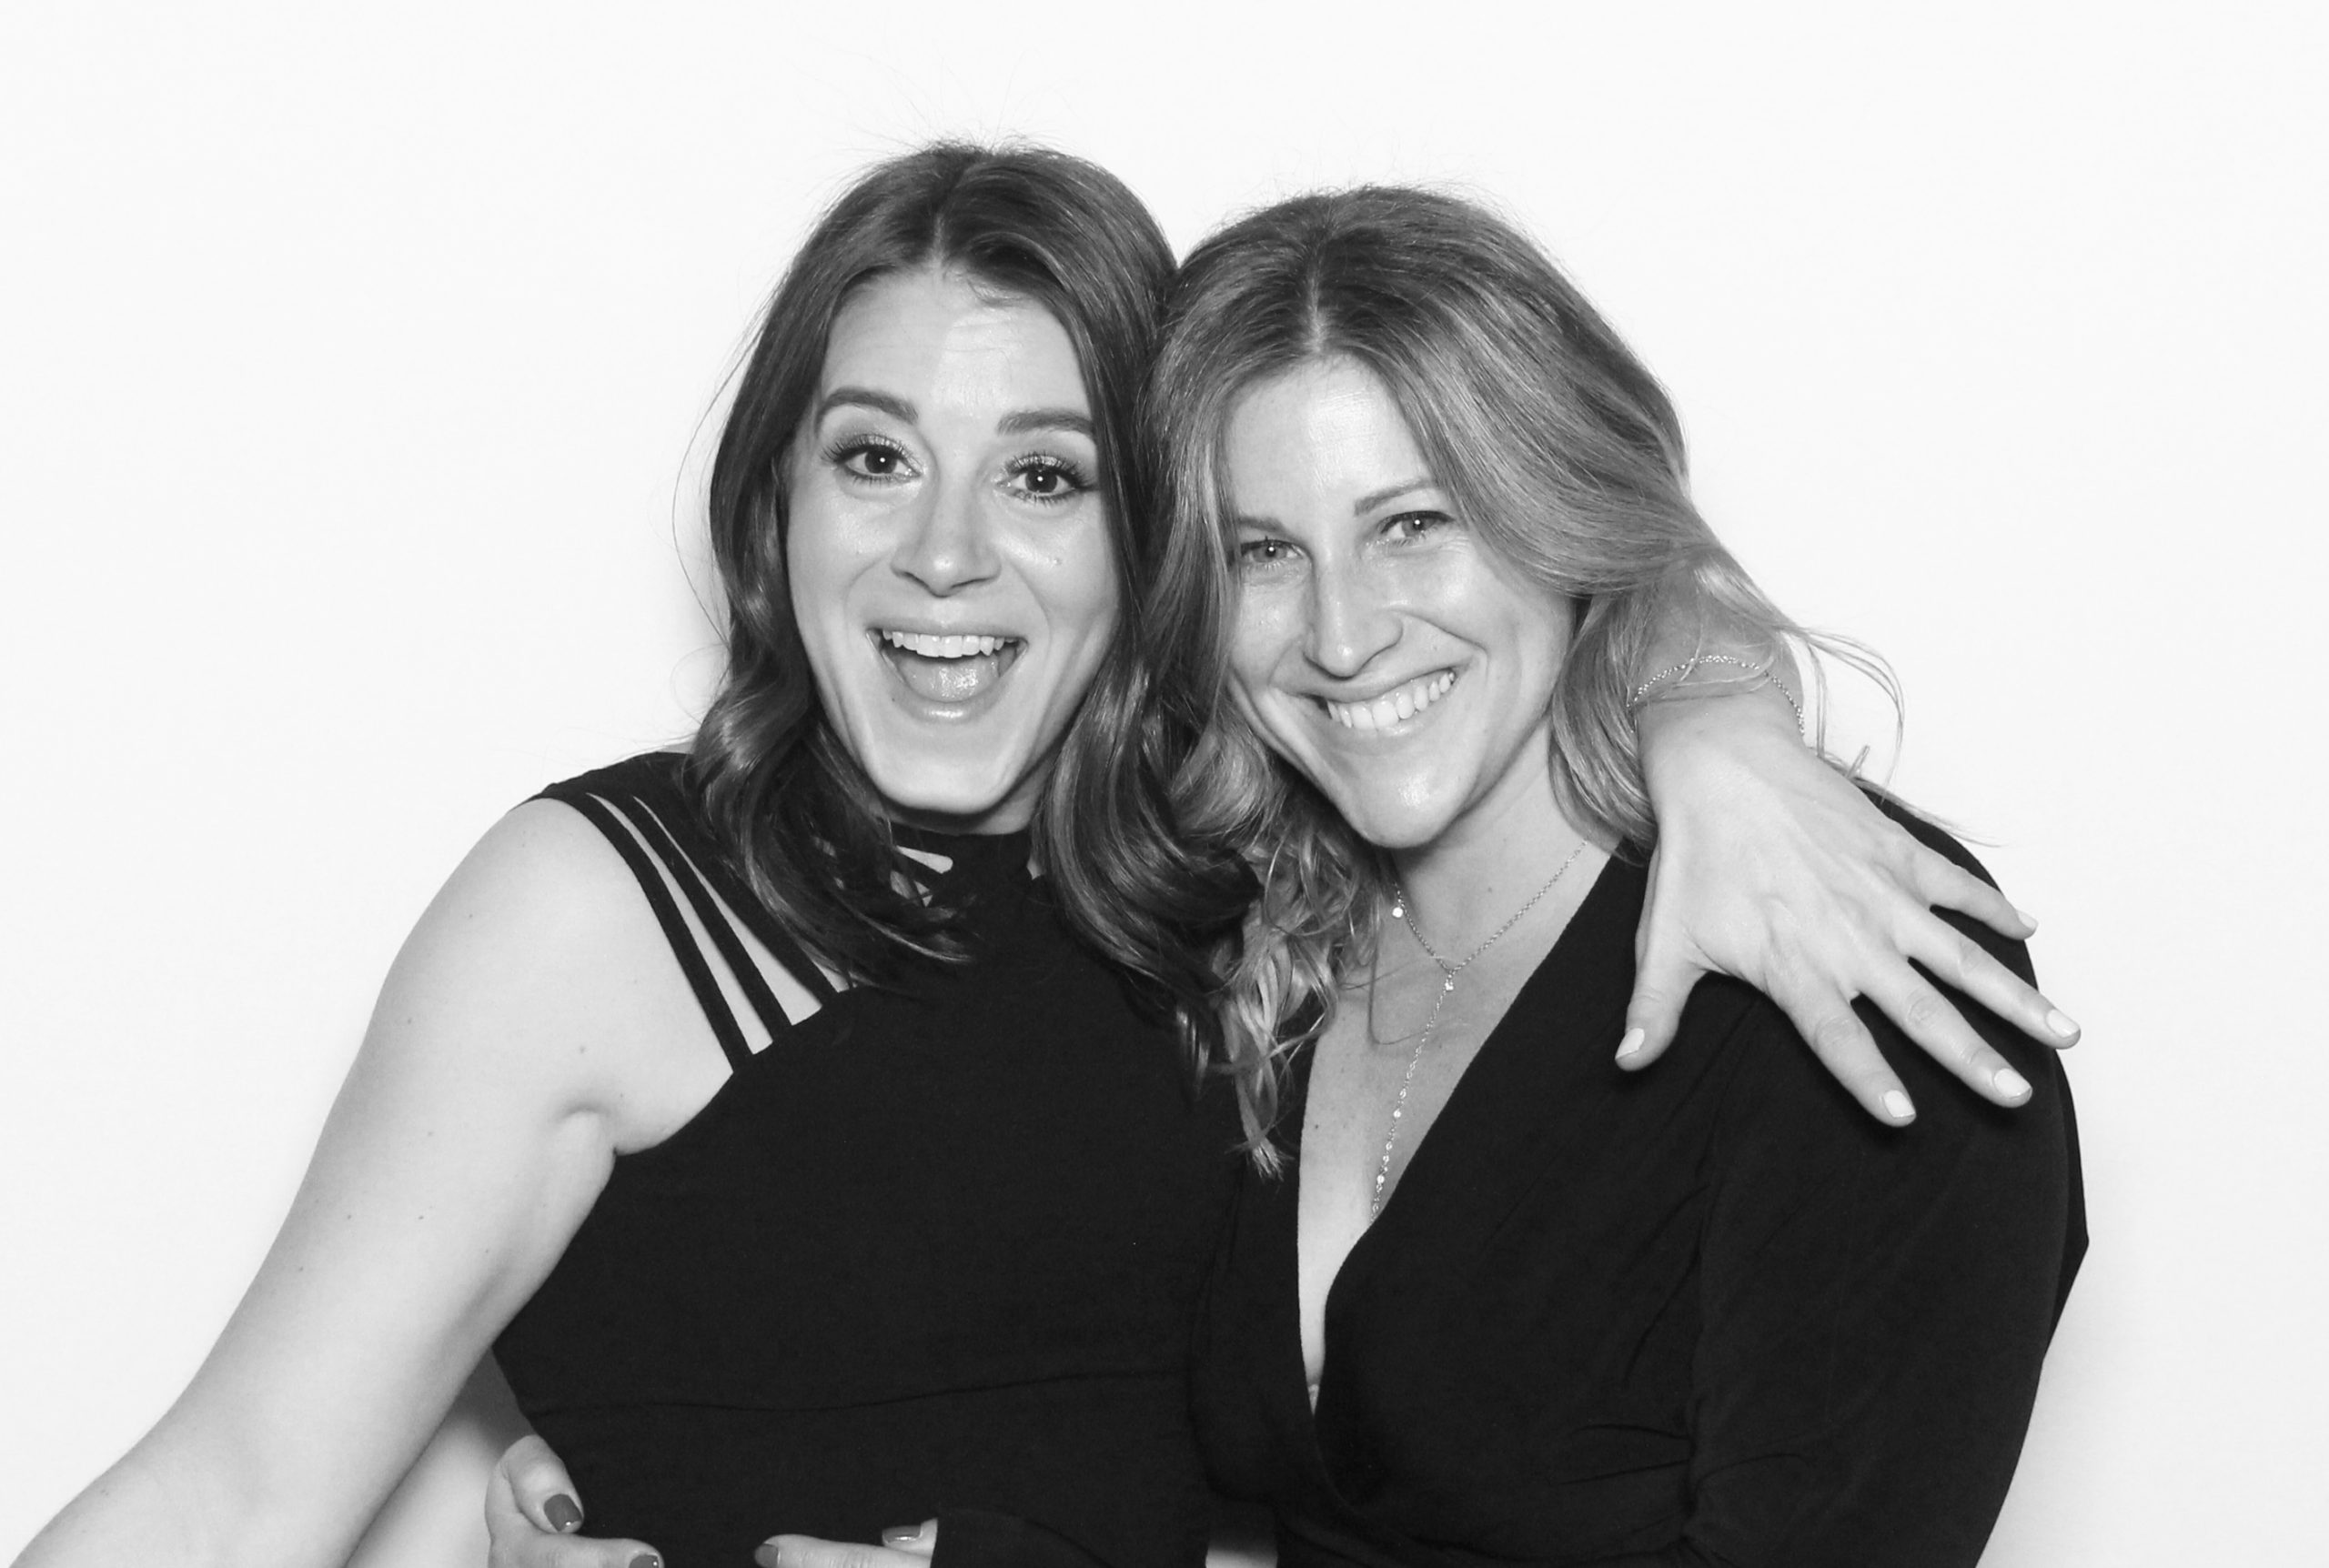 Photo Booth Rental Services black and white photo infinity Booth